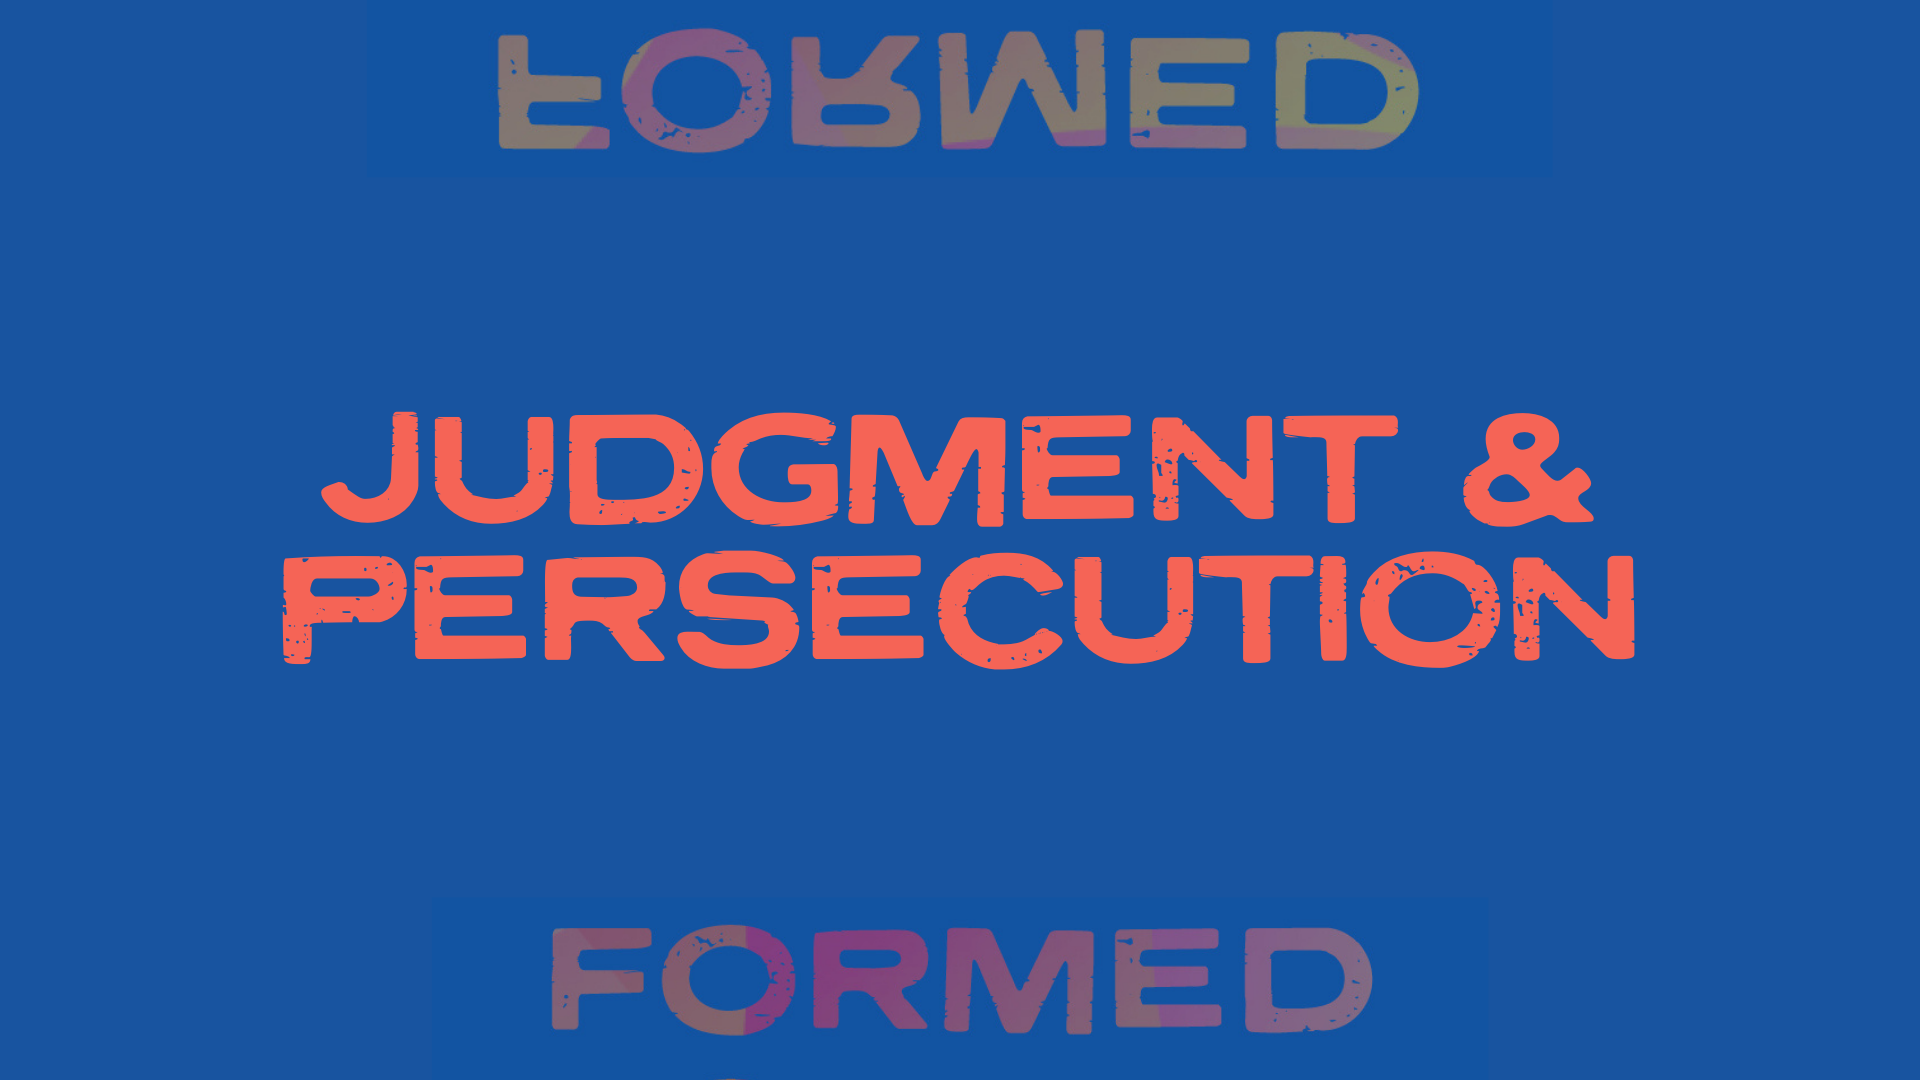 Judgment & Persecution